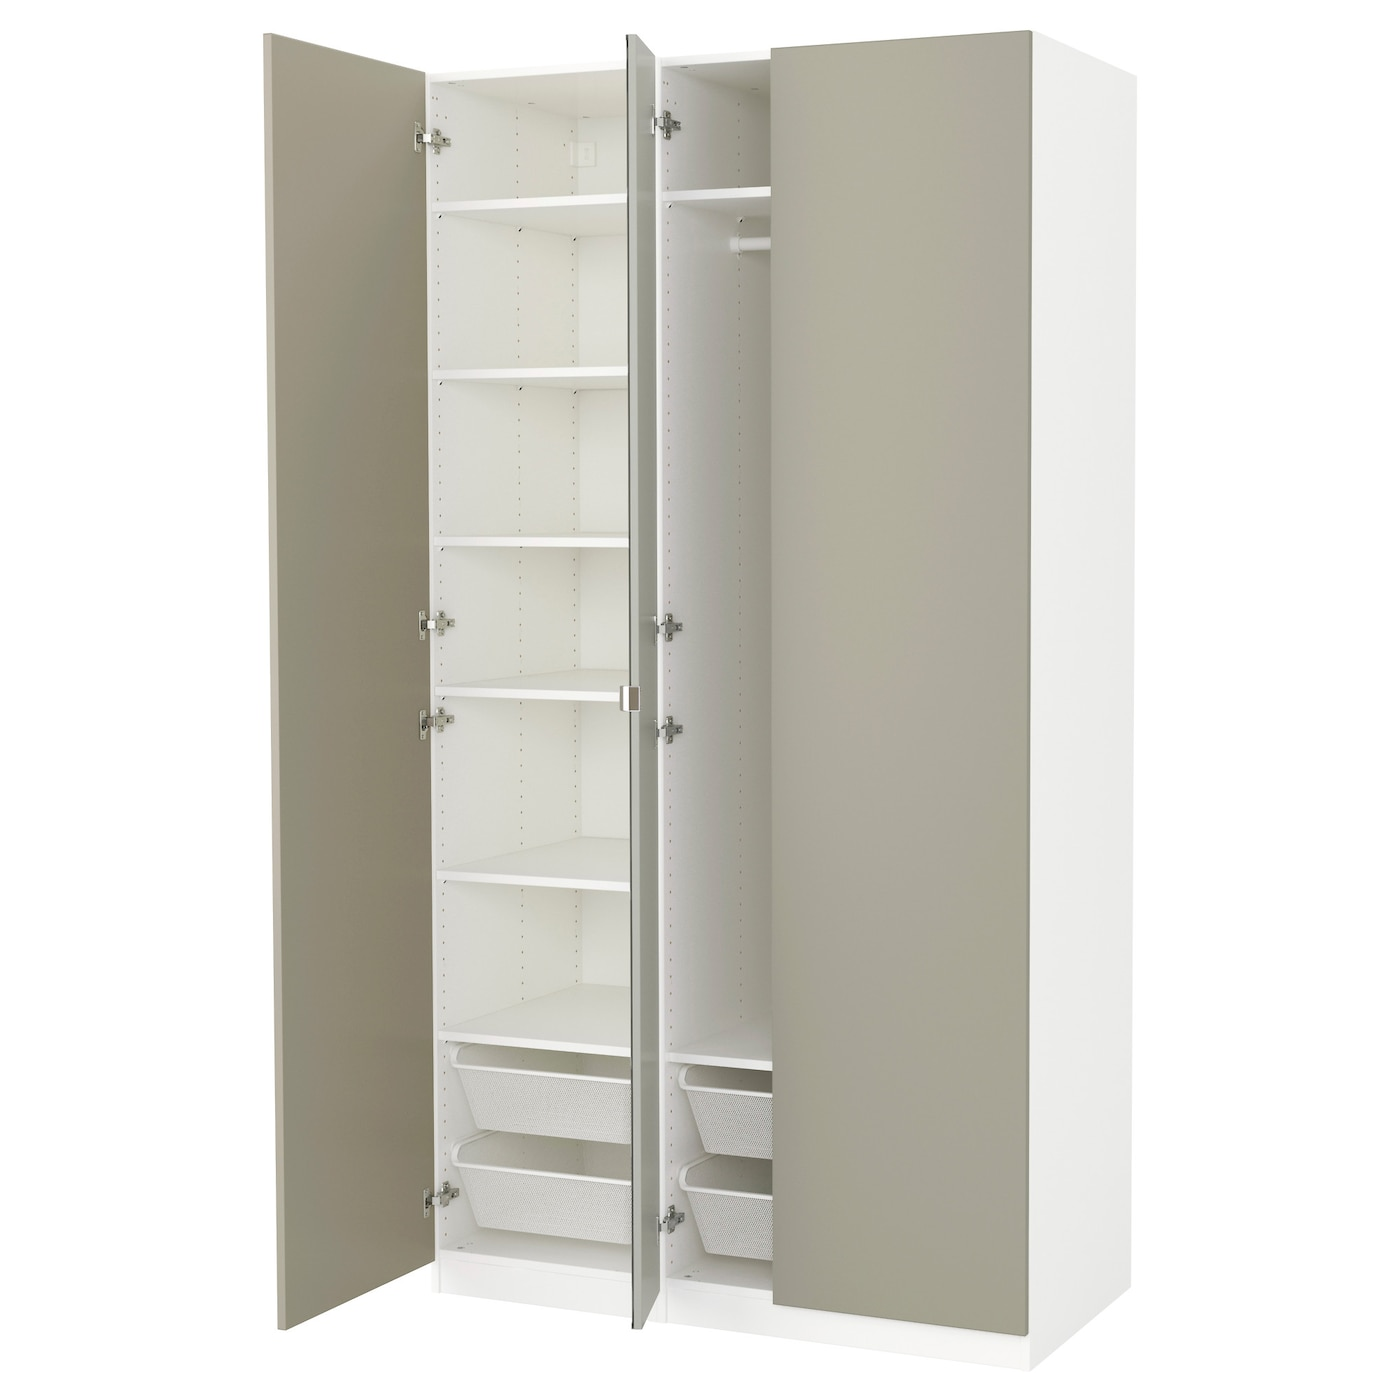 pax wardrobe white forsand vikedal 125x60x236 cm ikea. Black Bedroom Furniture Sets. Home Design Ideas